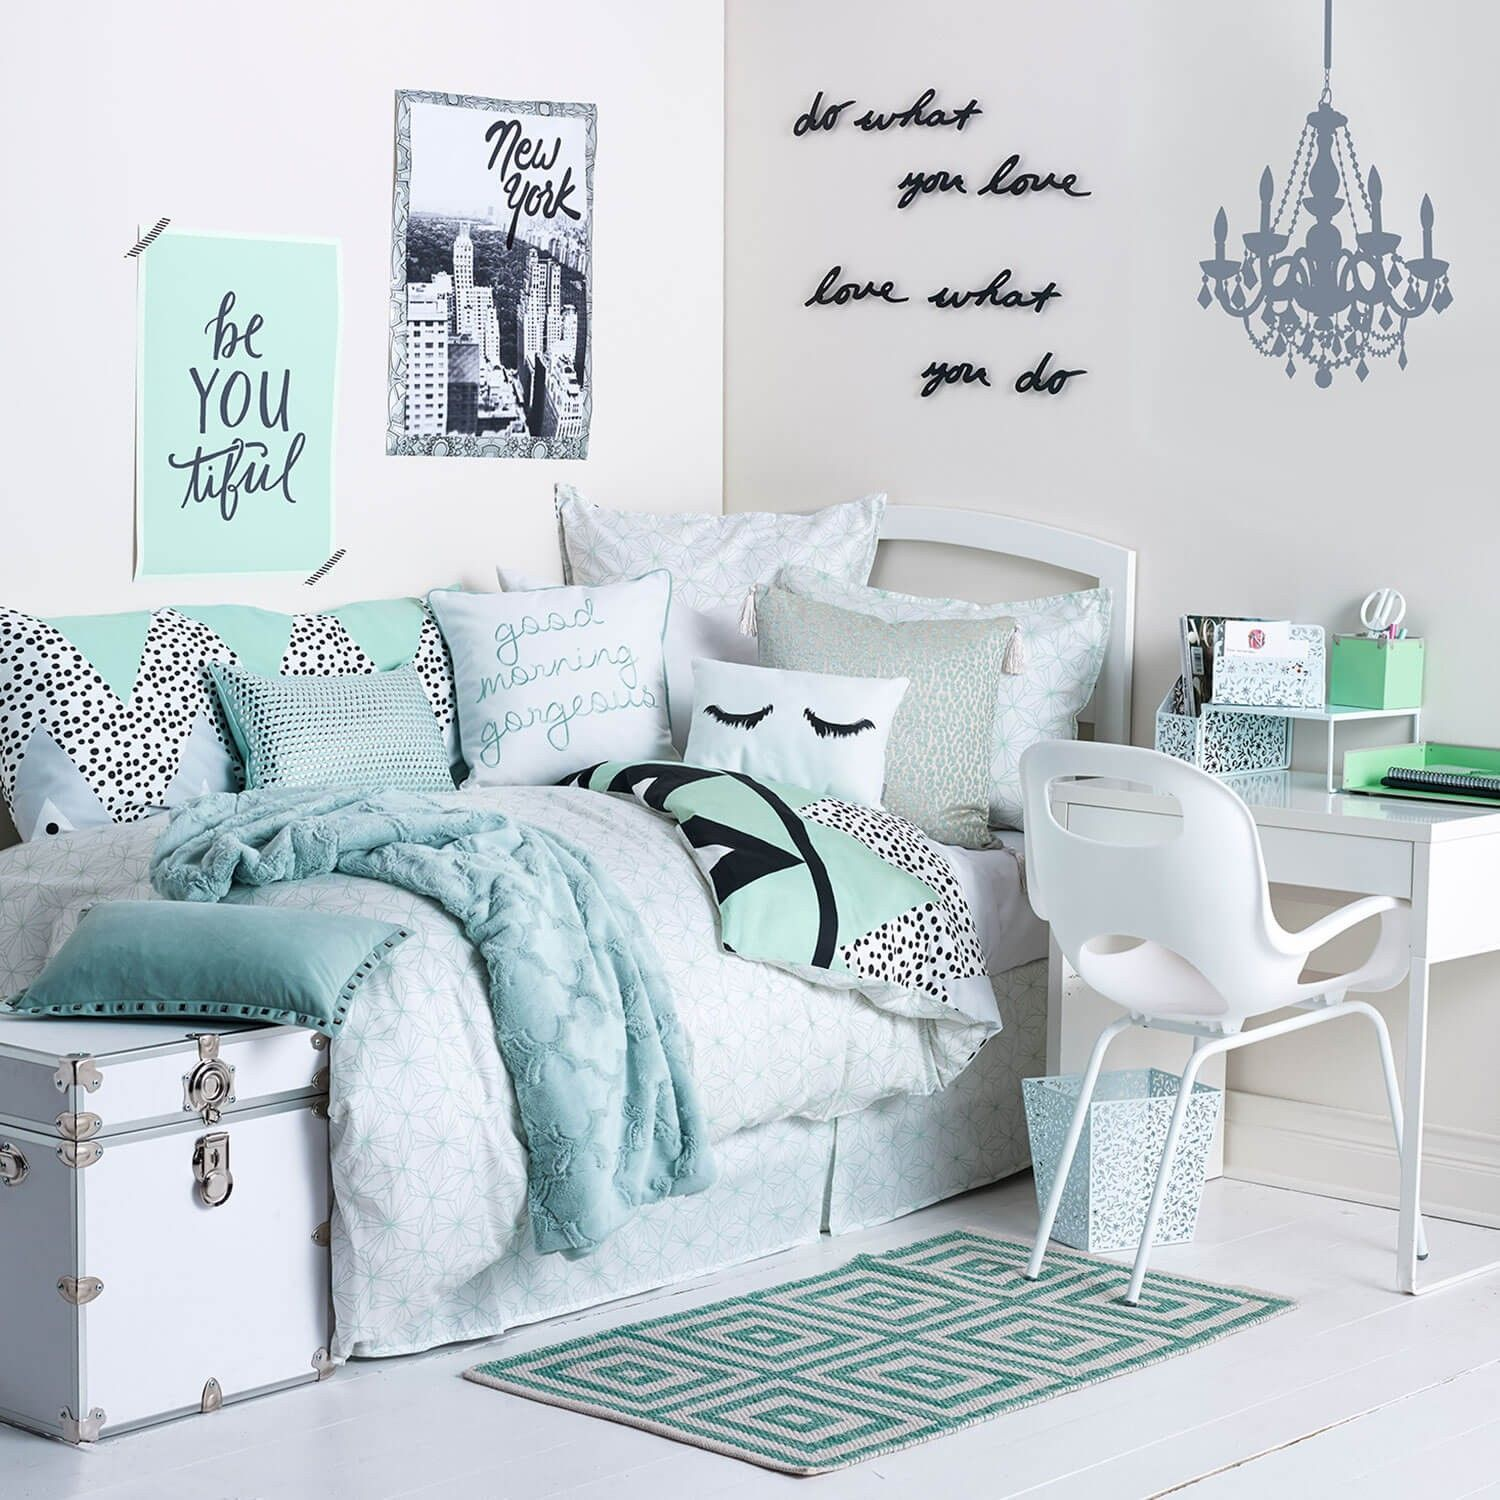 Room decoration ideas for college girls  cute teenage girl bedroom ideas  pretty bedroom bedrooms and room